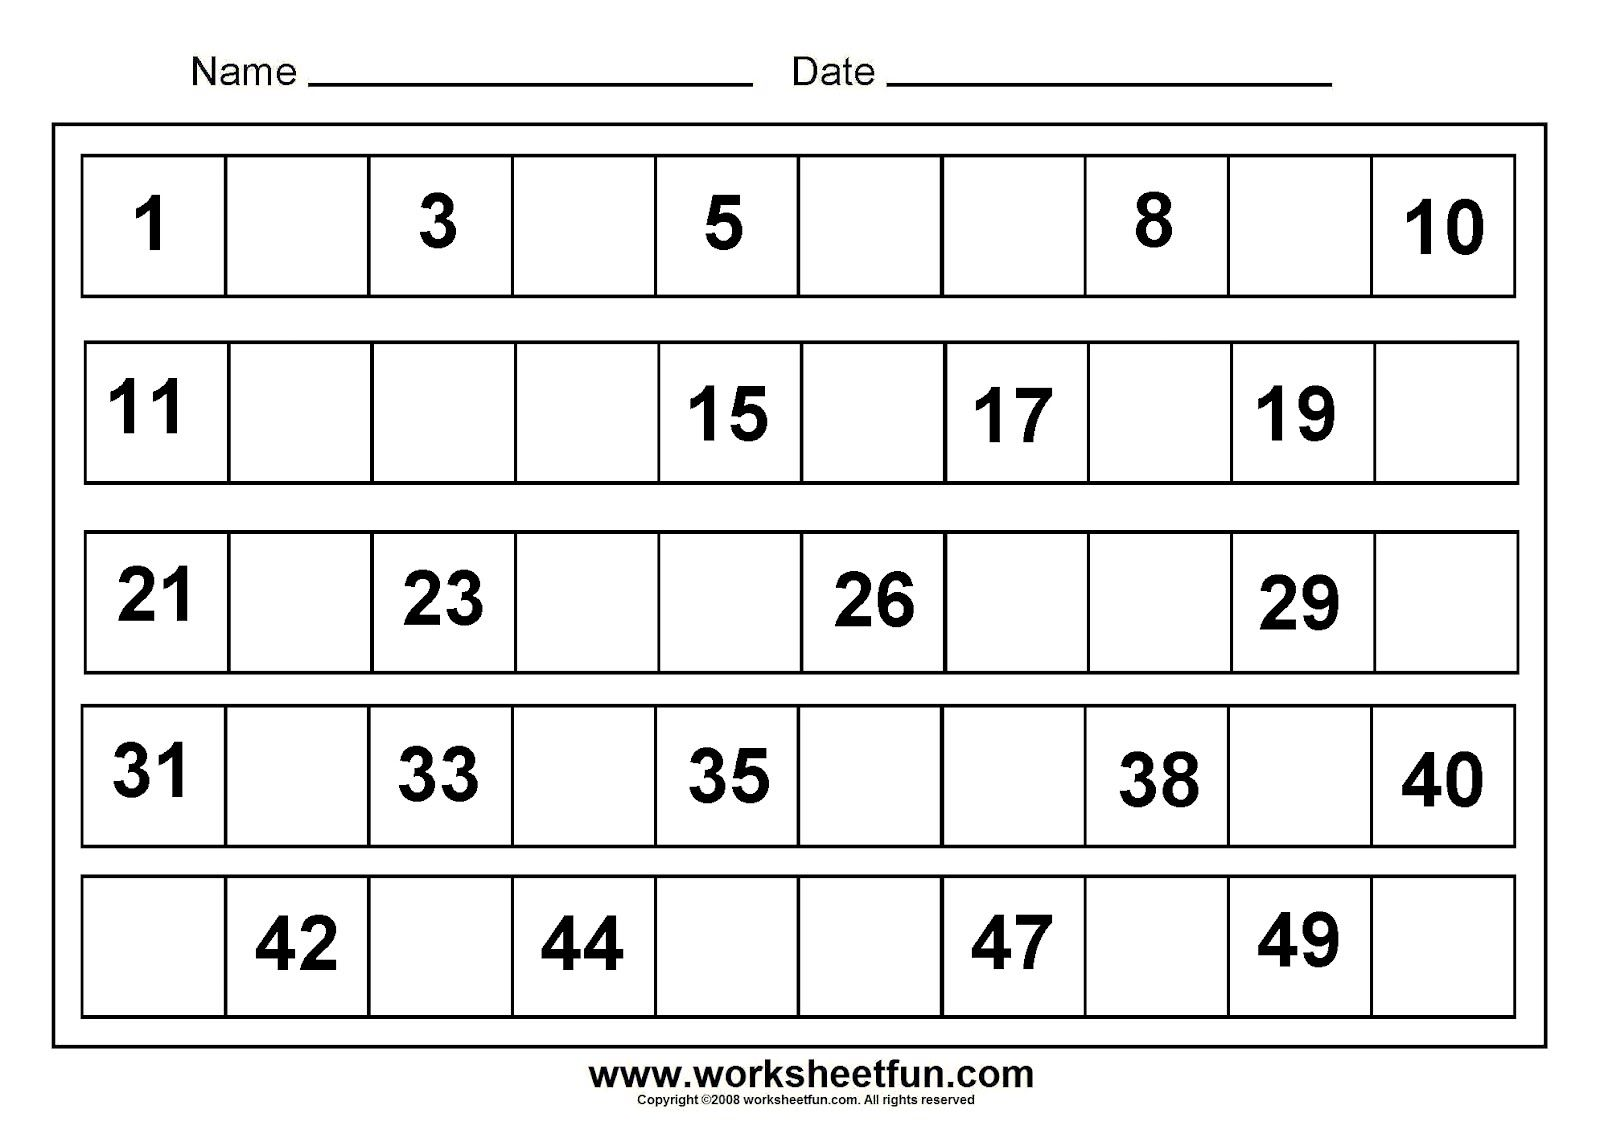 math worksheet : 1000 images about work sheets on pinterest  math worksheets  : Number Writing Worksheets For Kindergarten